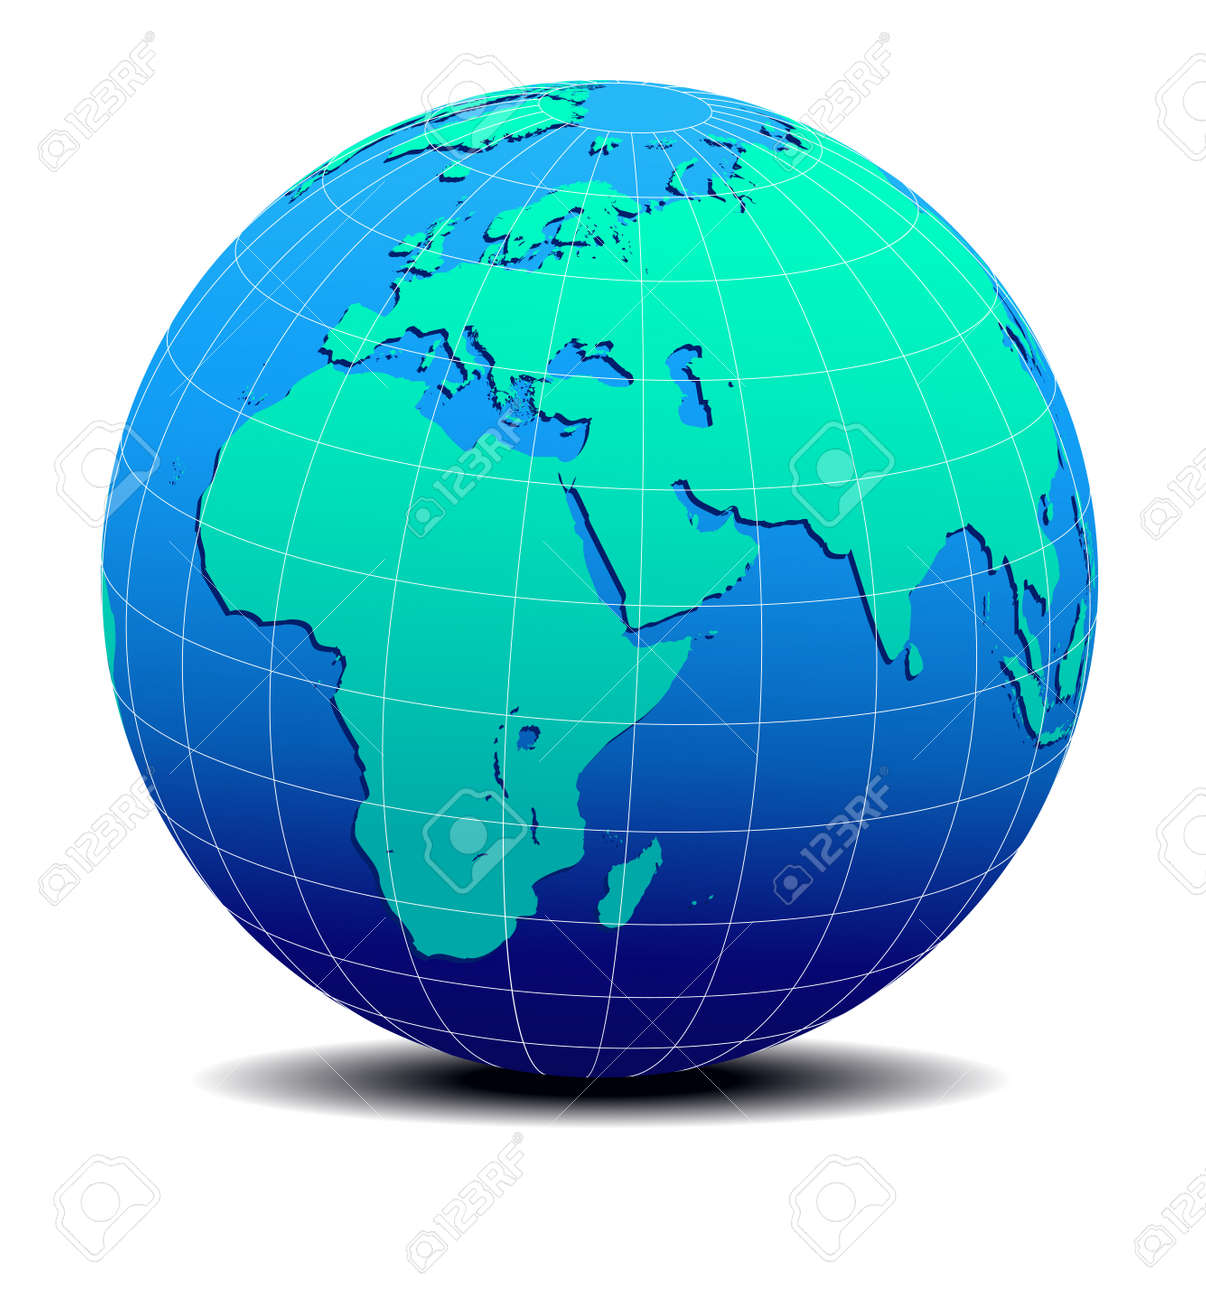 Africa arabia and india global world map royalty free cliparts africa arabia and india global world map stock vector 17540902 gumiabroncs Choice Image